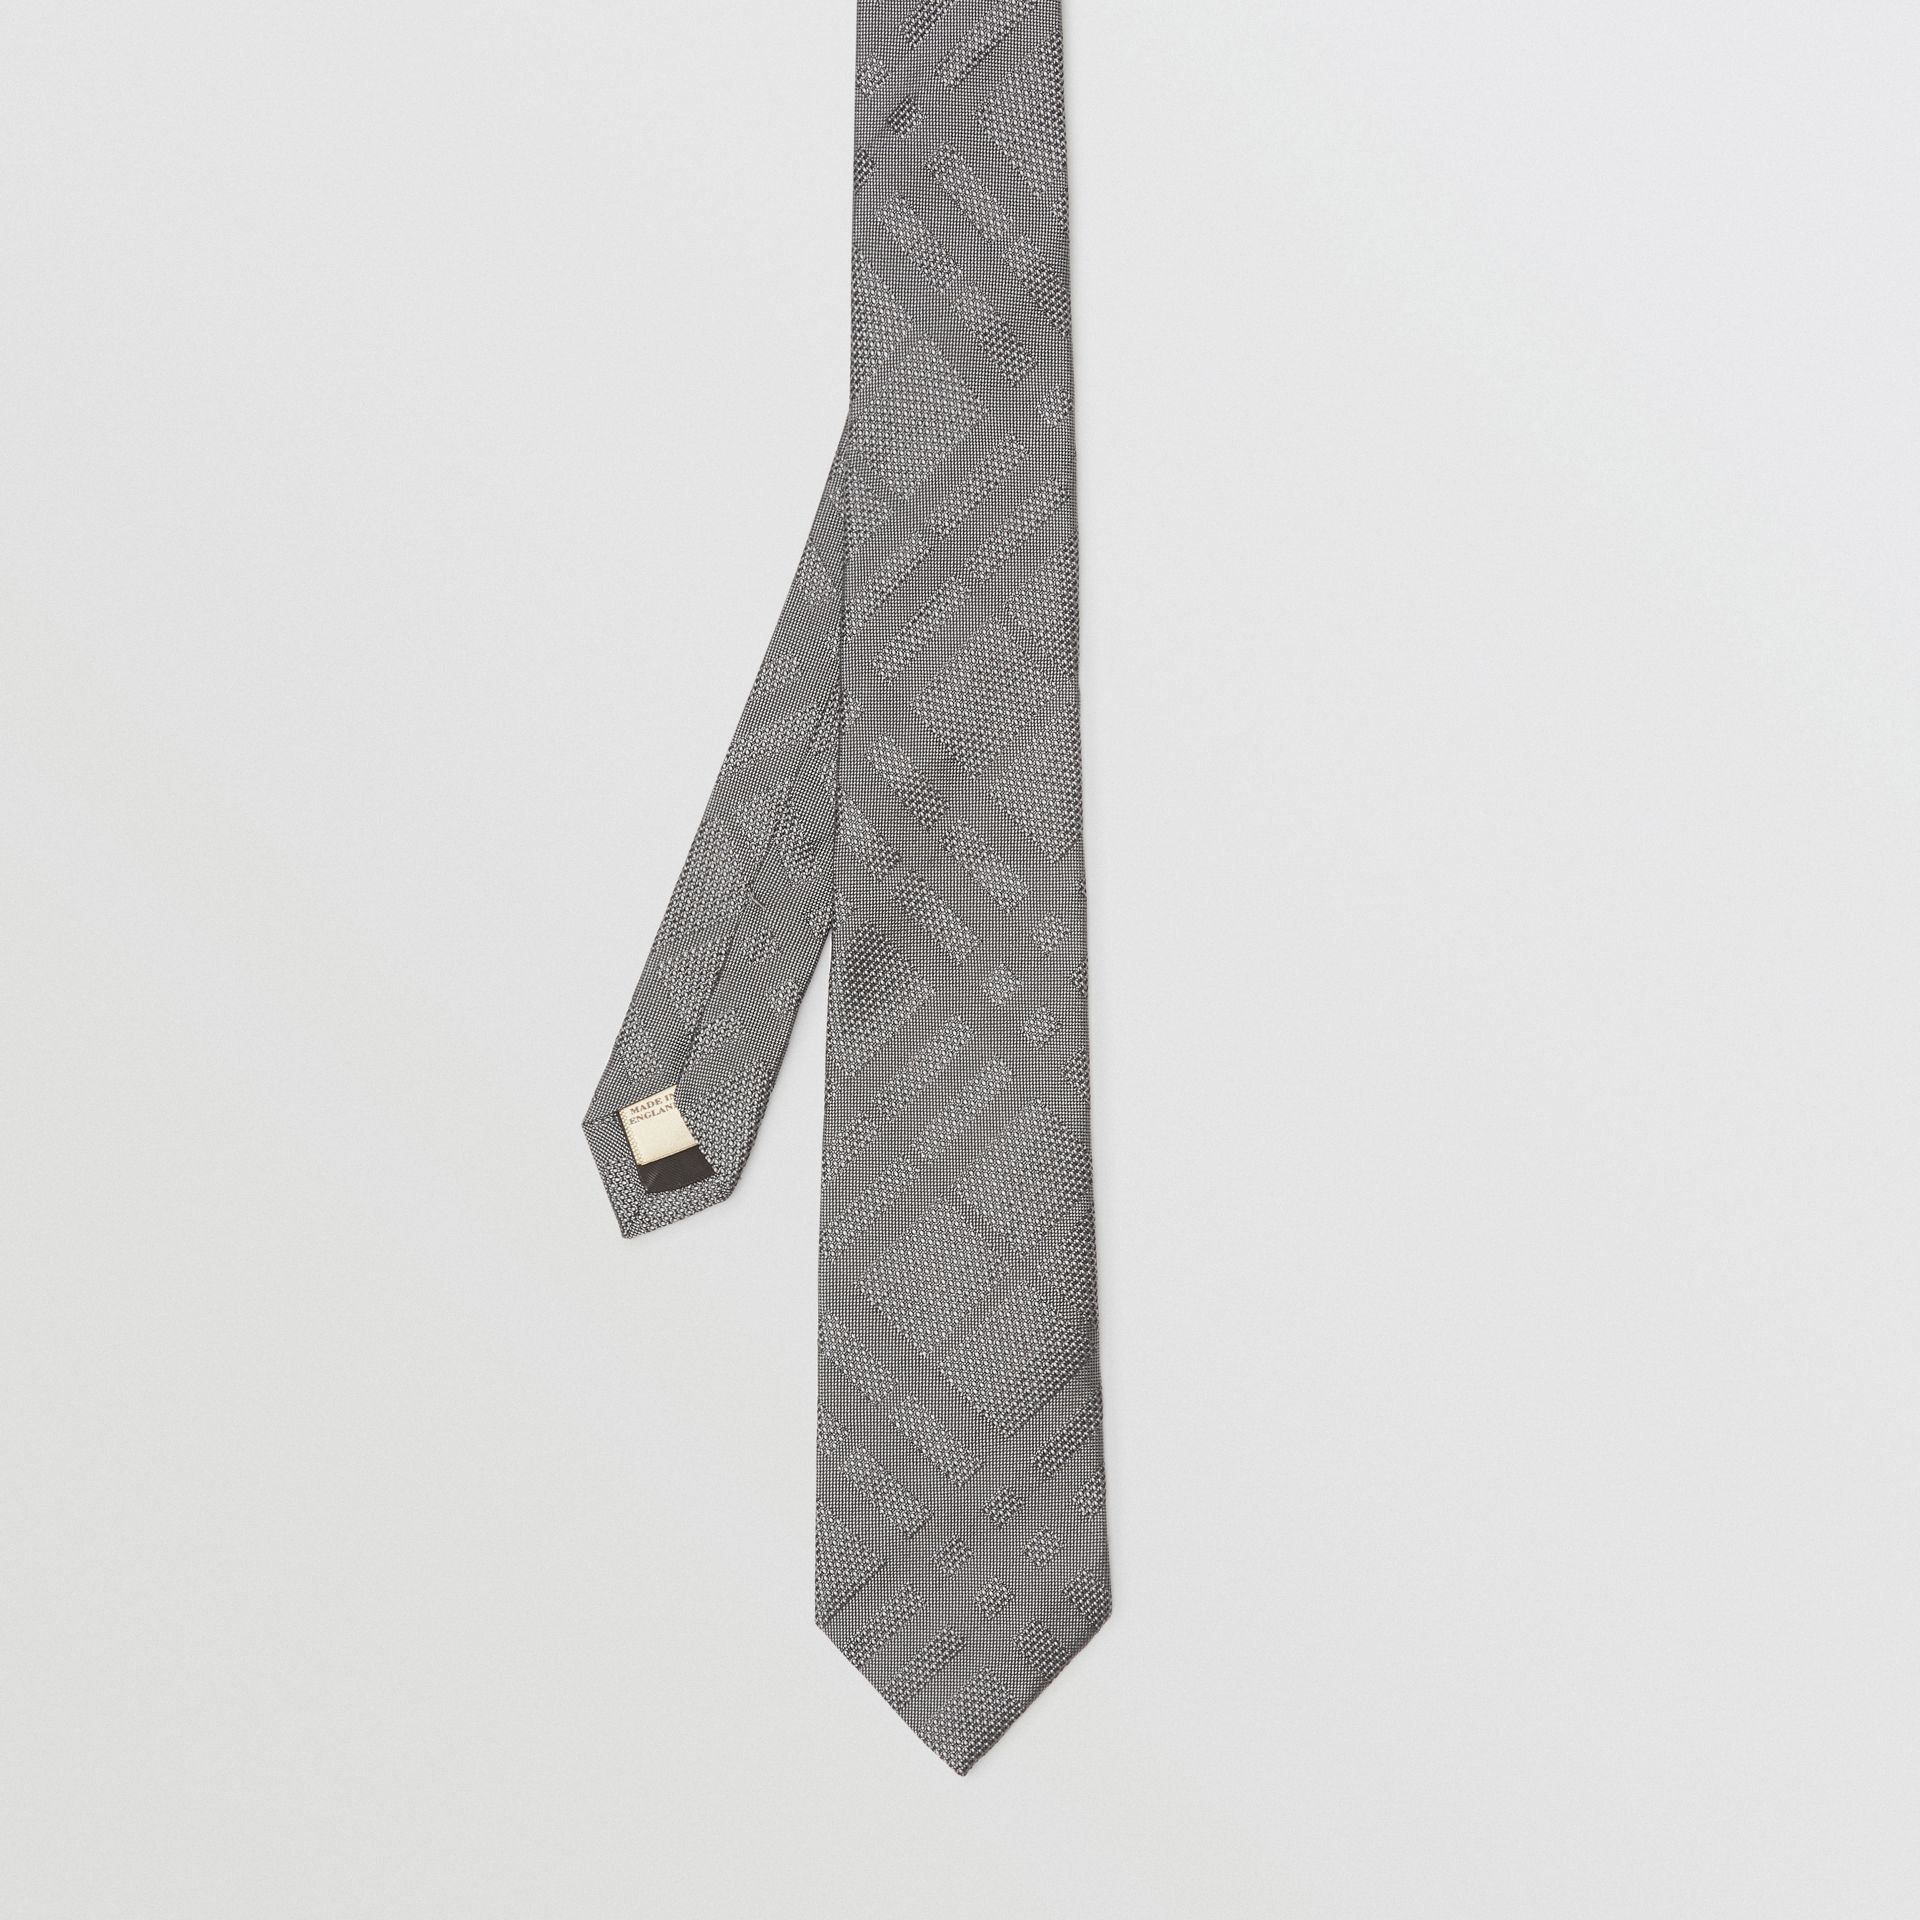 Classic Cut Check Silk Jacquard Tie in Charcoal - Men | Burberry Canada - gallery image 4